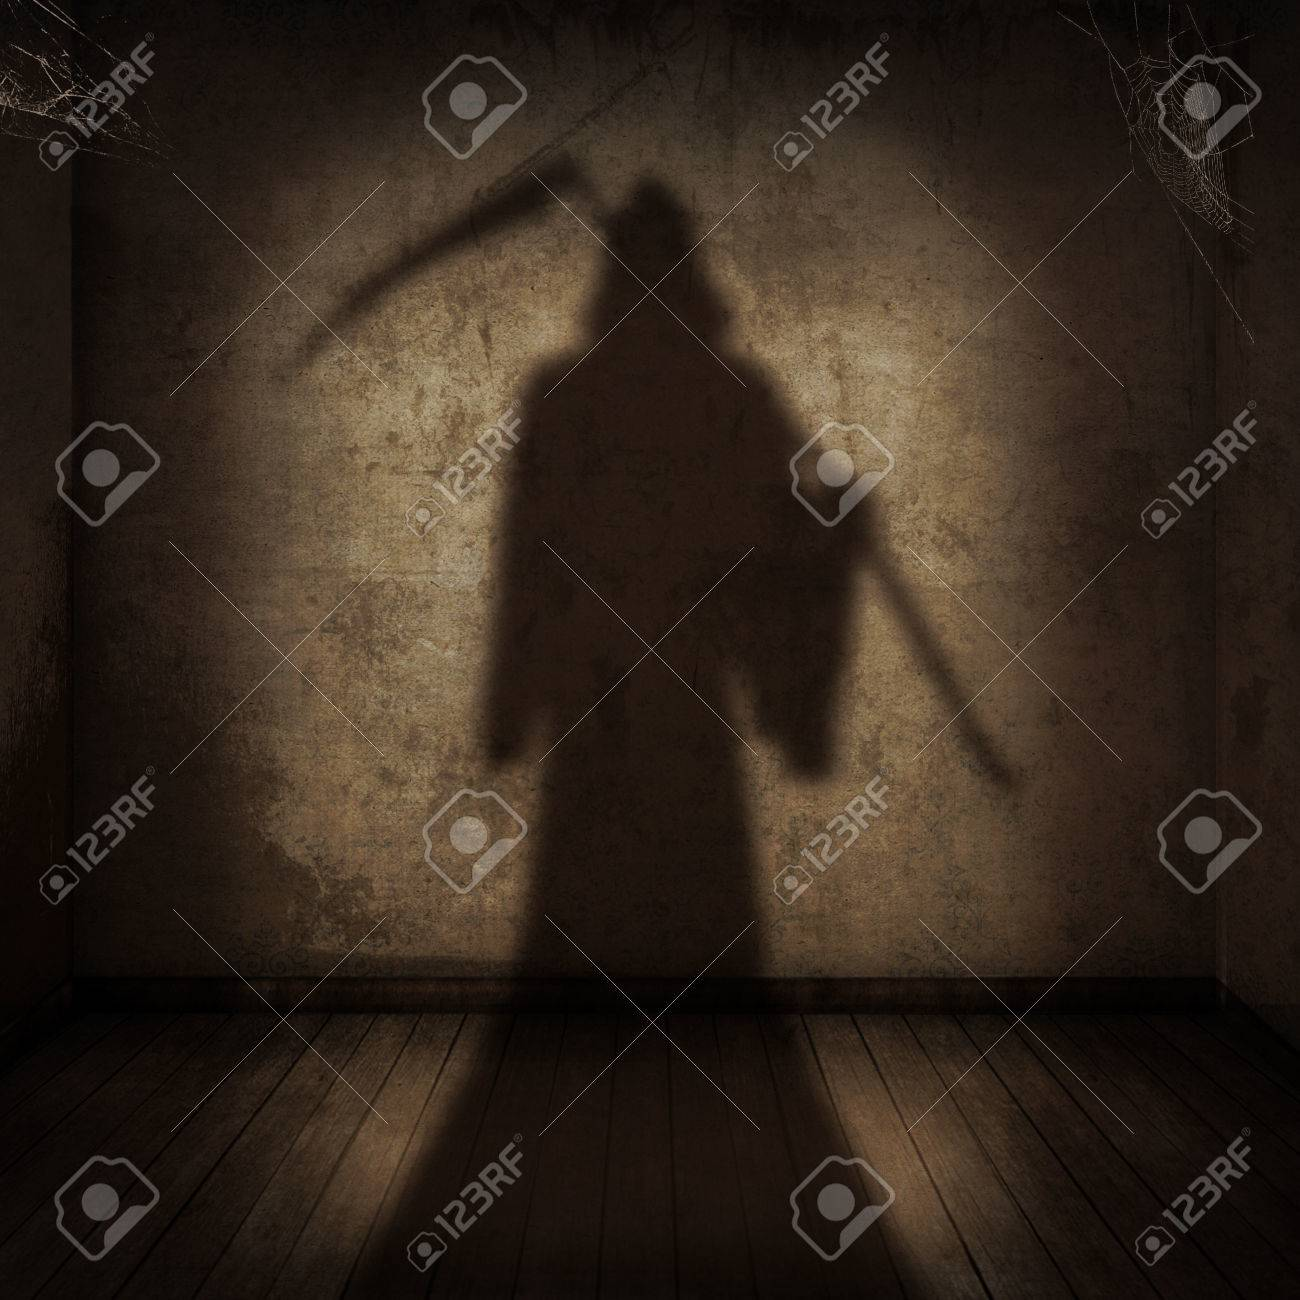 The shadow of the death with a scythe entering an empty room - 29235348